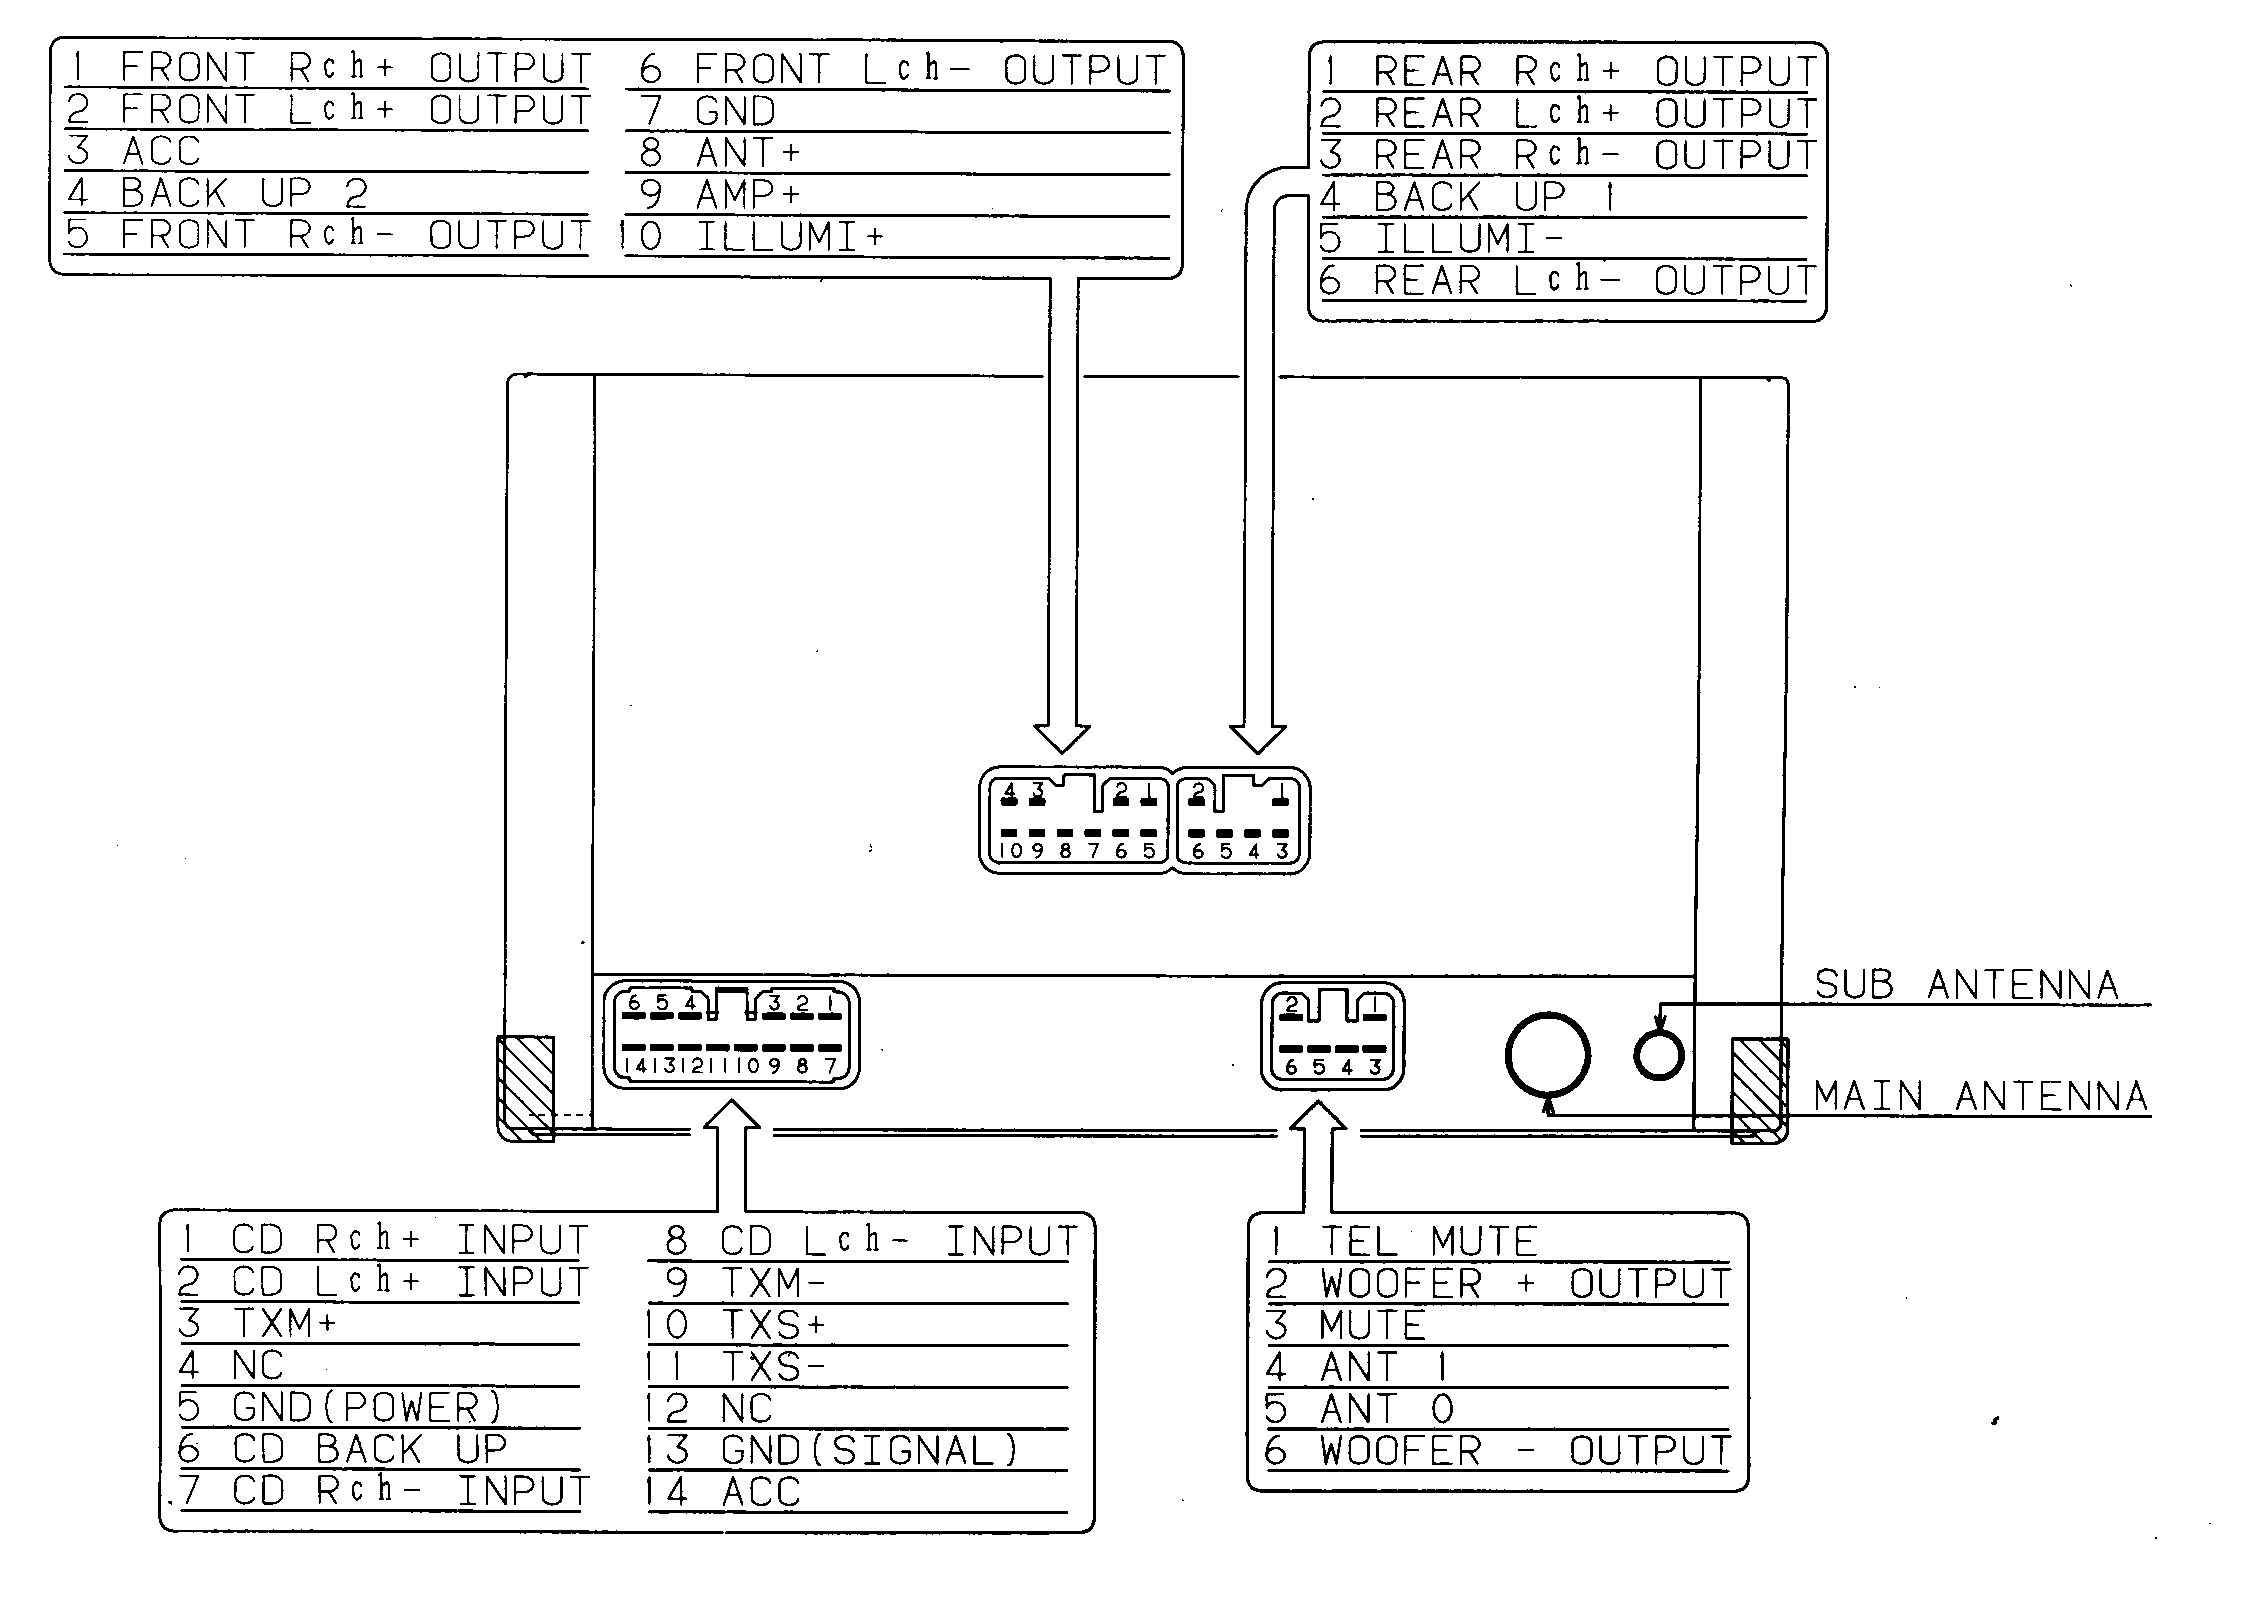 WireHarnessLexus121001 car audio wire diagram codes lexus factory car stereo repair 1995 lexus sc300 wiring diagrams at gsmportal.co